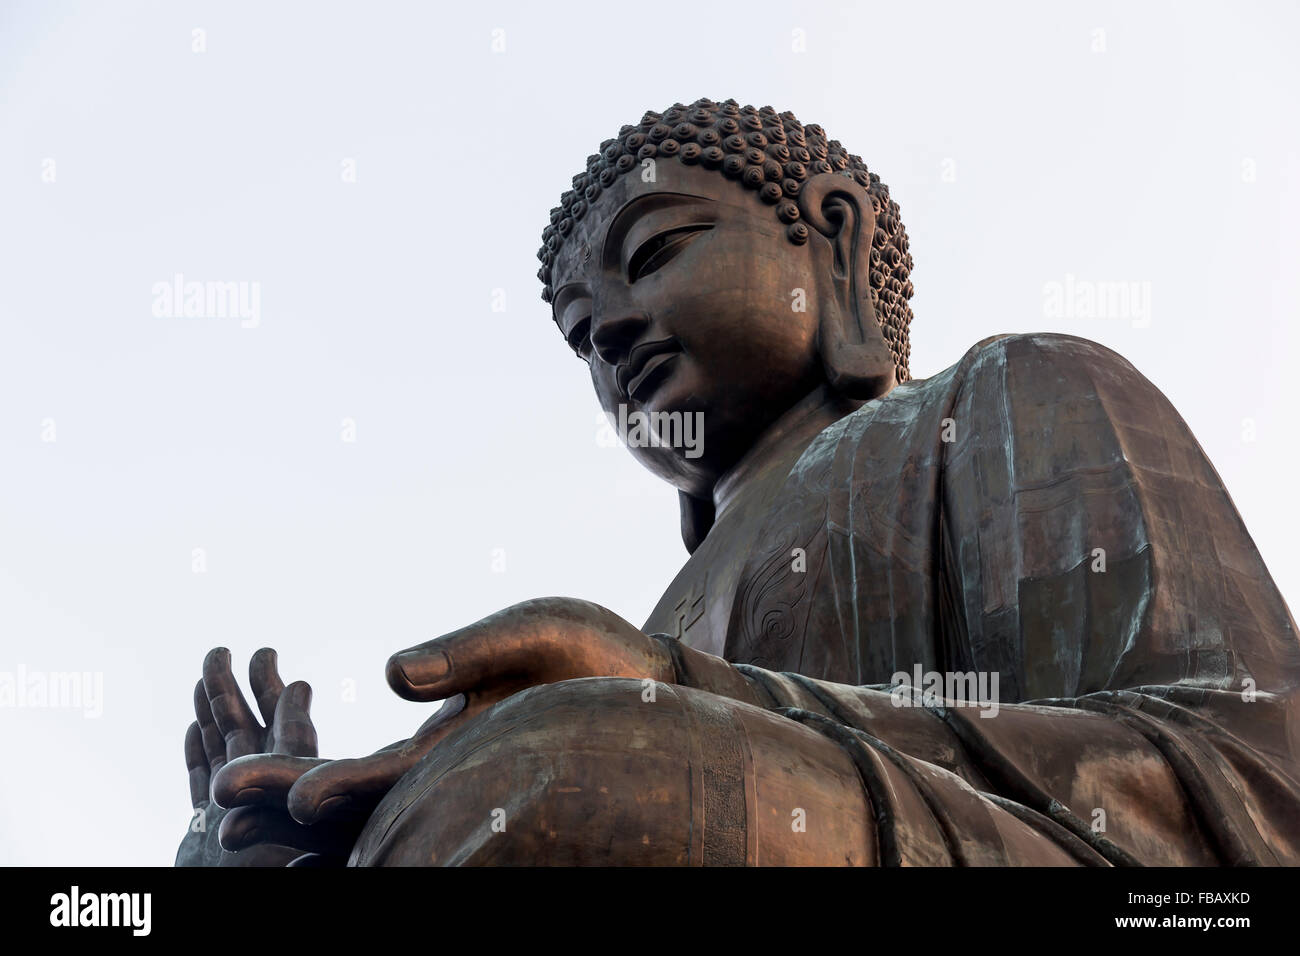 Giant Buddha at Po Lin Monastery, Hong Kong. - Stock Image